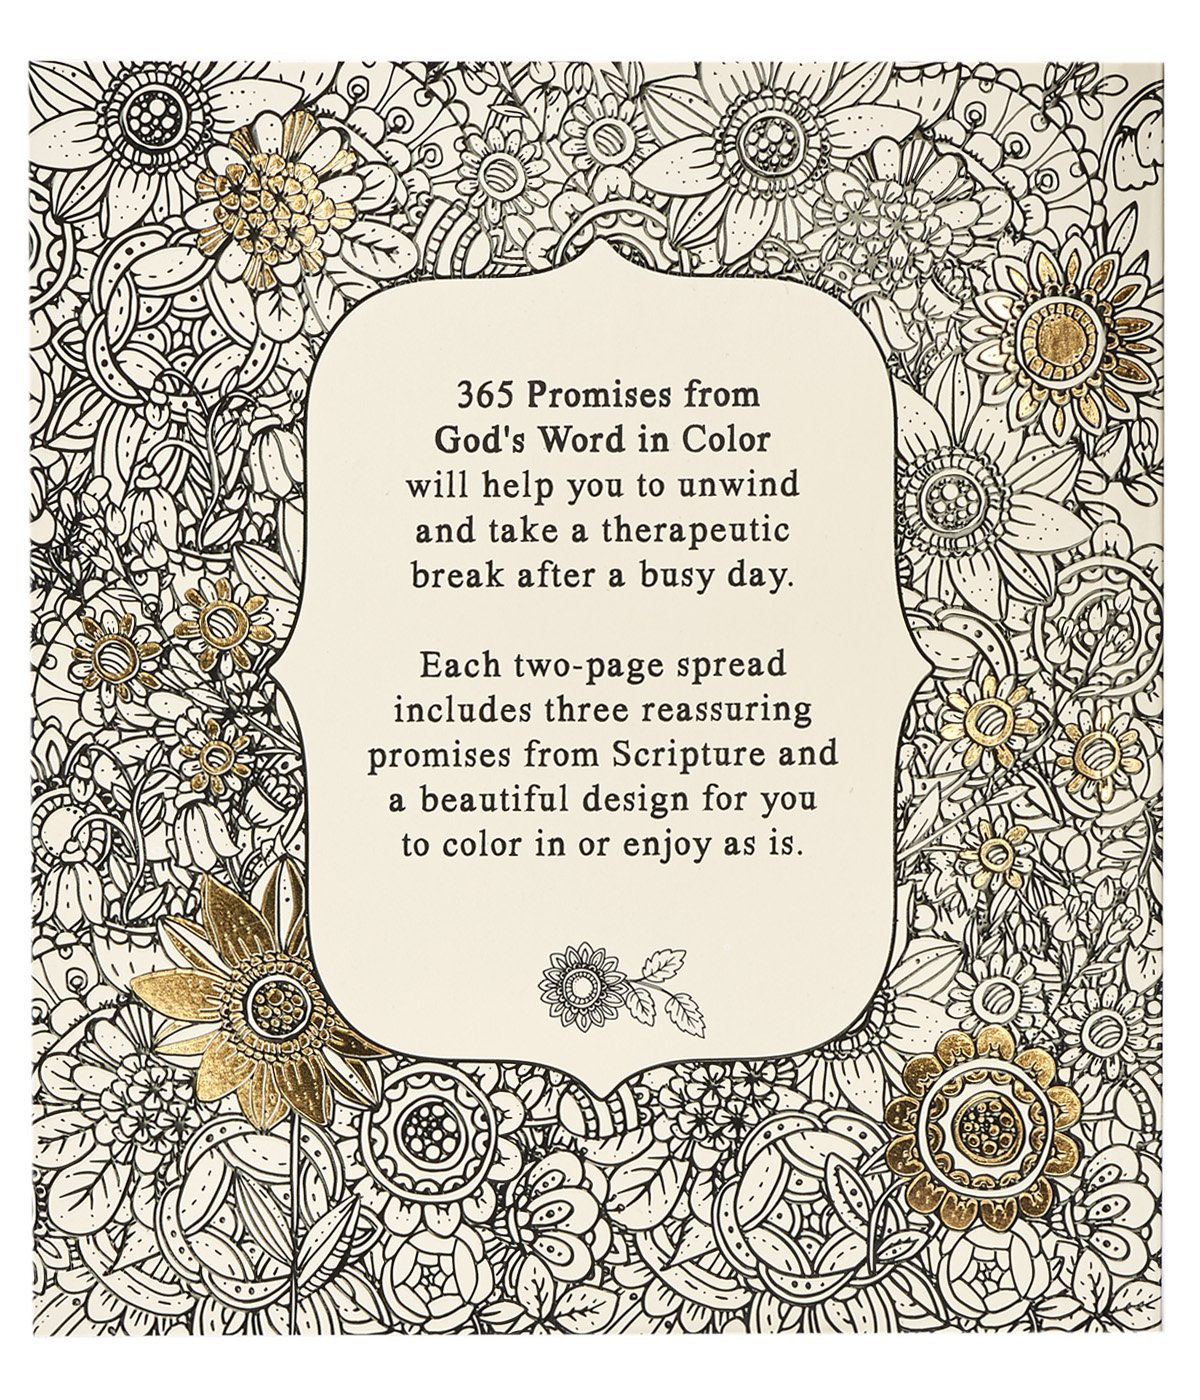 Coloring pages 365 - Amazon Com 365 Promises From God S Word In Color Scripture And Coloring Pages 9781432115951 Christian Art Publishers Corporate Author Books